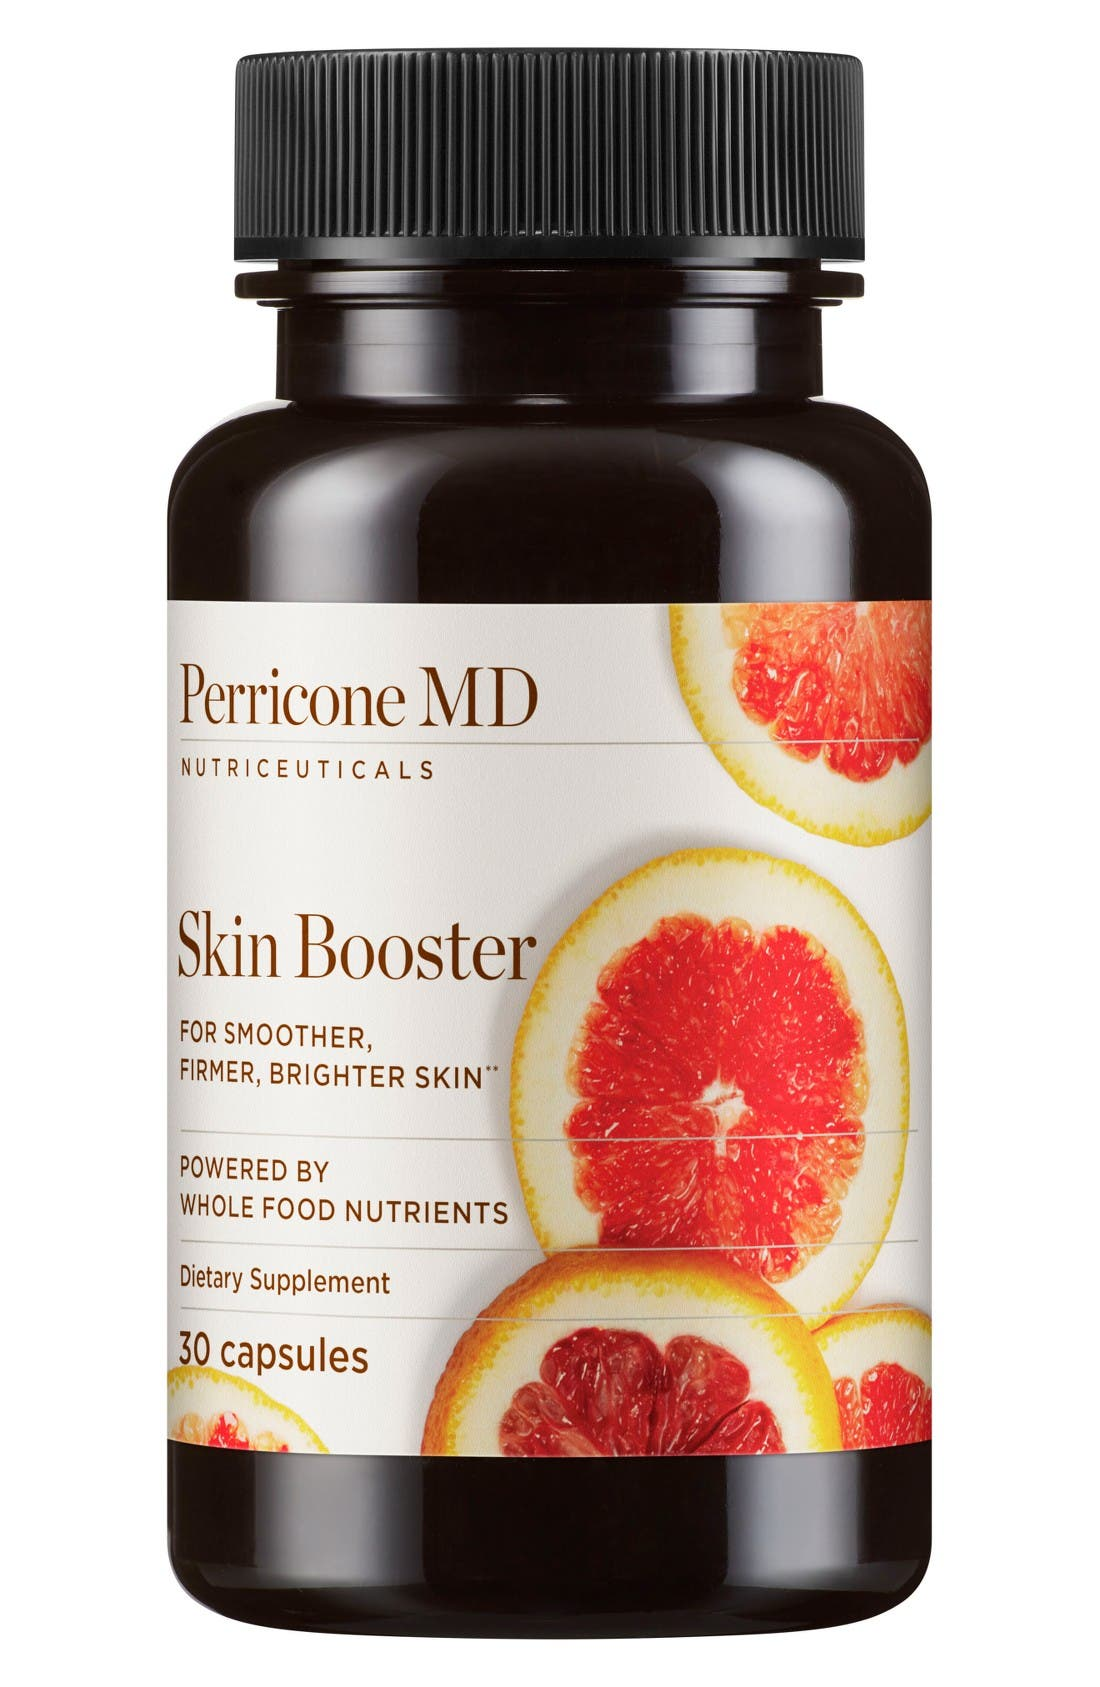 Perricone MD Skin Booster Supplement